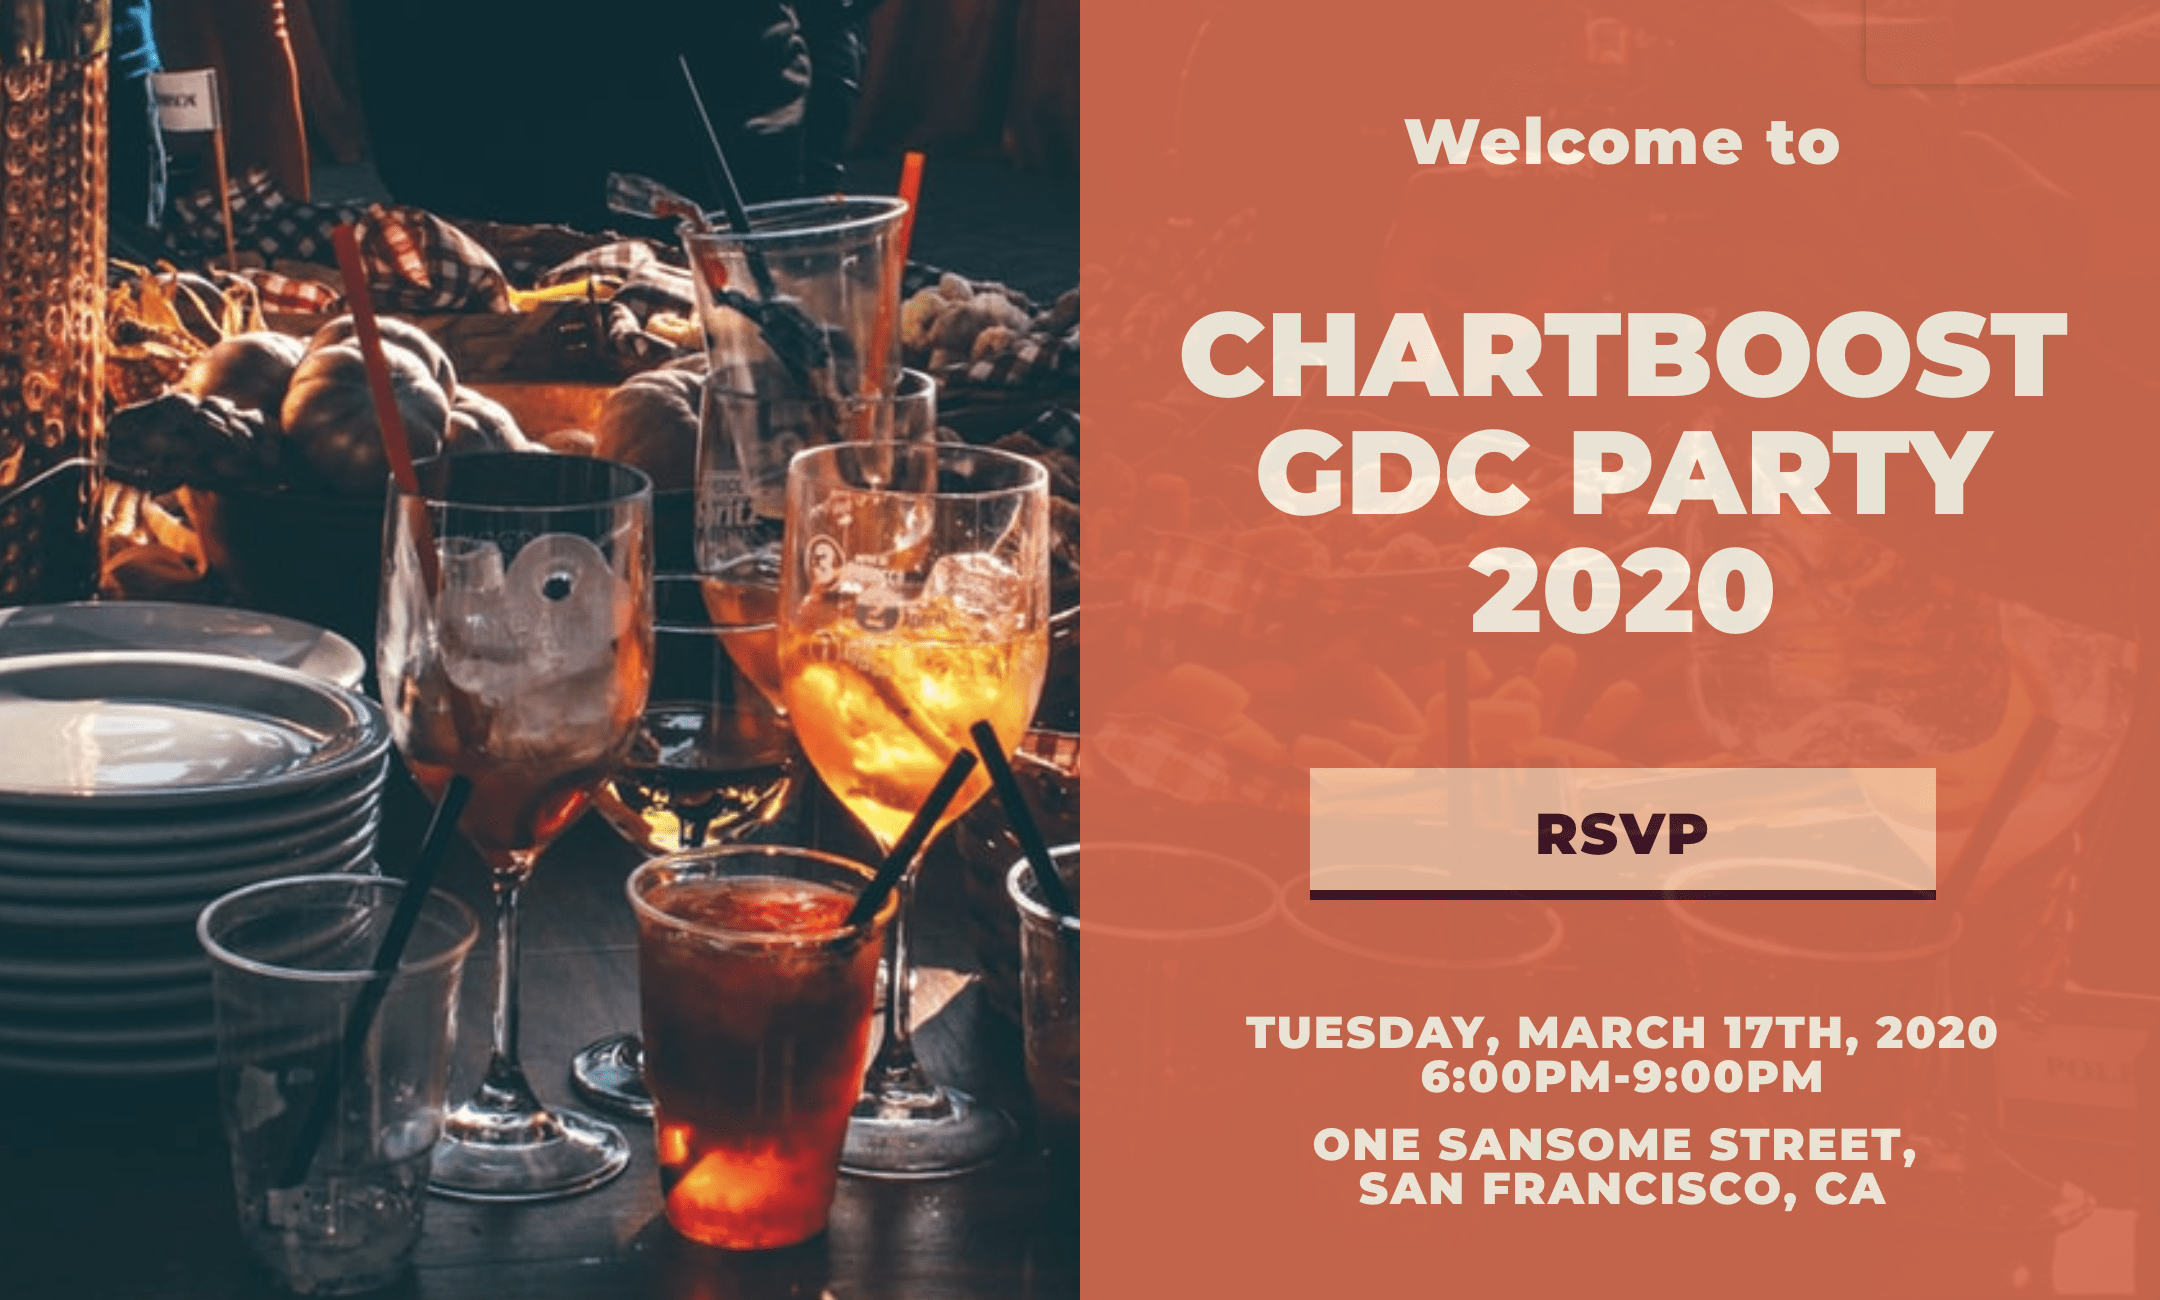 Chartboost GDC Party